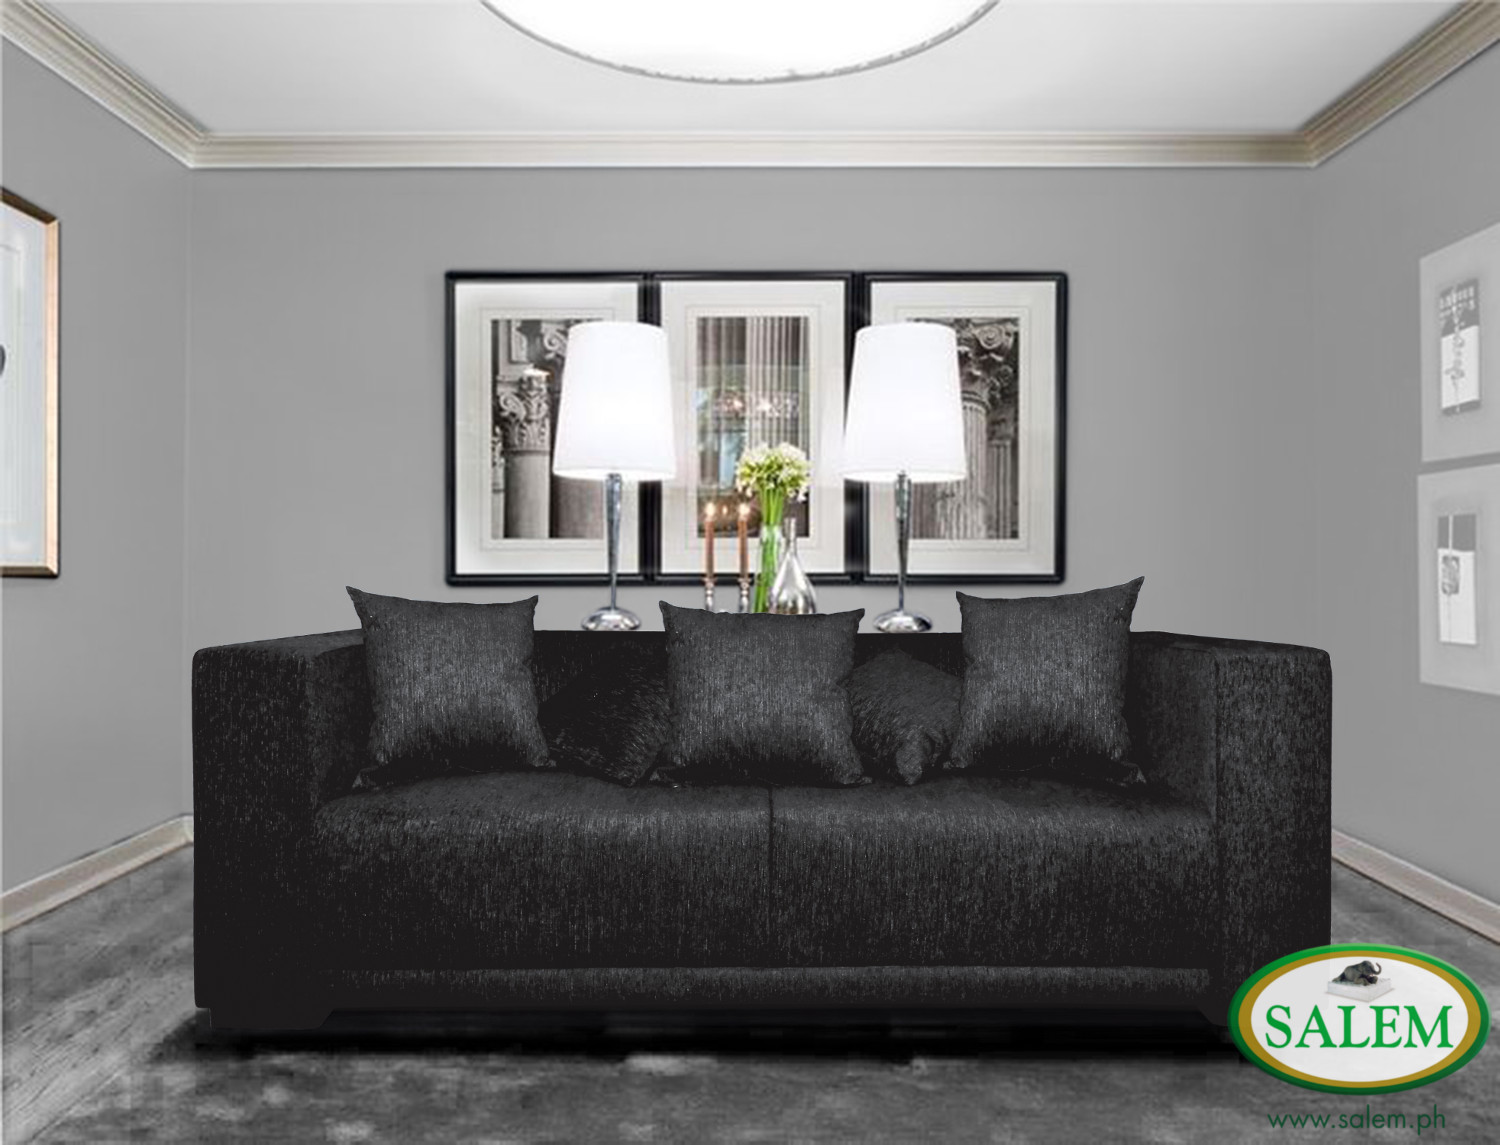 Salem Sofa Collection The Official Blog - Ashford sofa